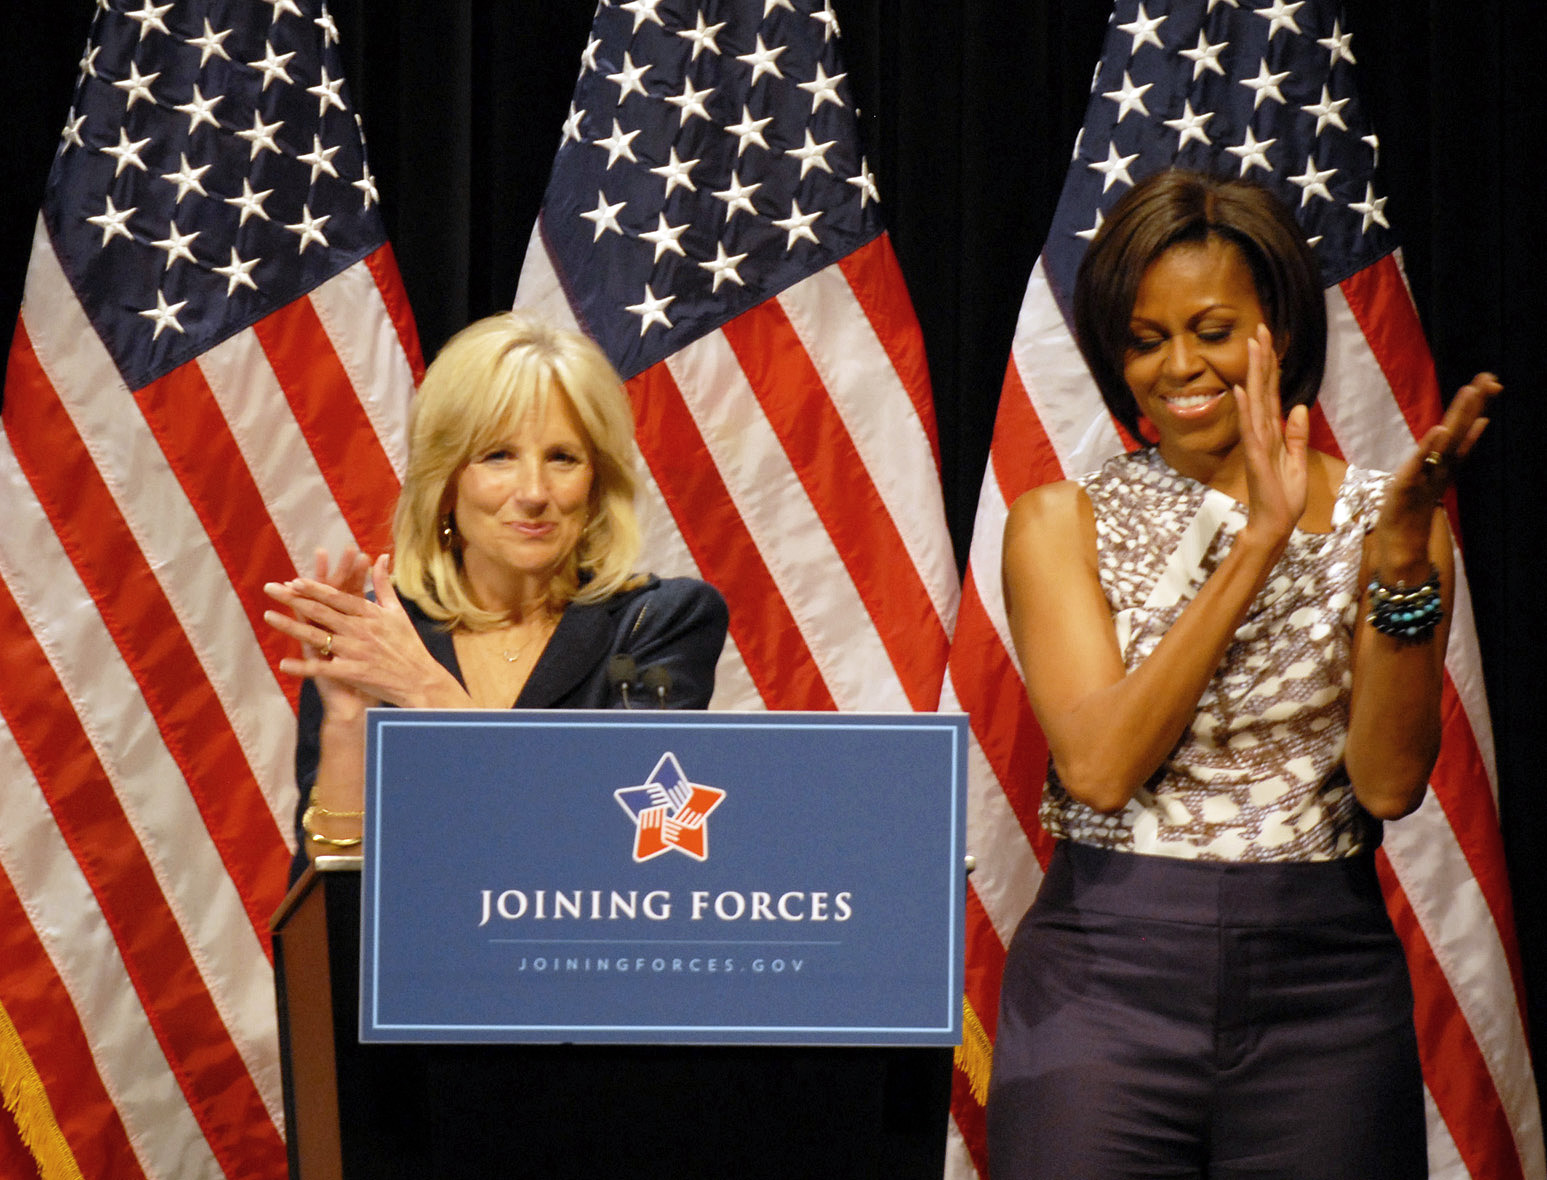 Dr. Jill Biden, First Lady Michelle Obama photo:achieve.defense.gov